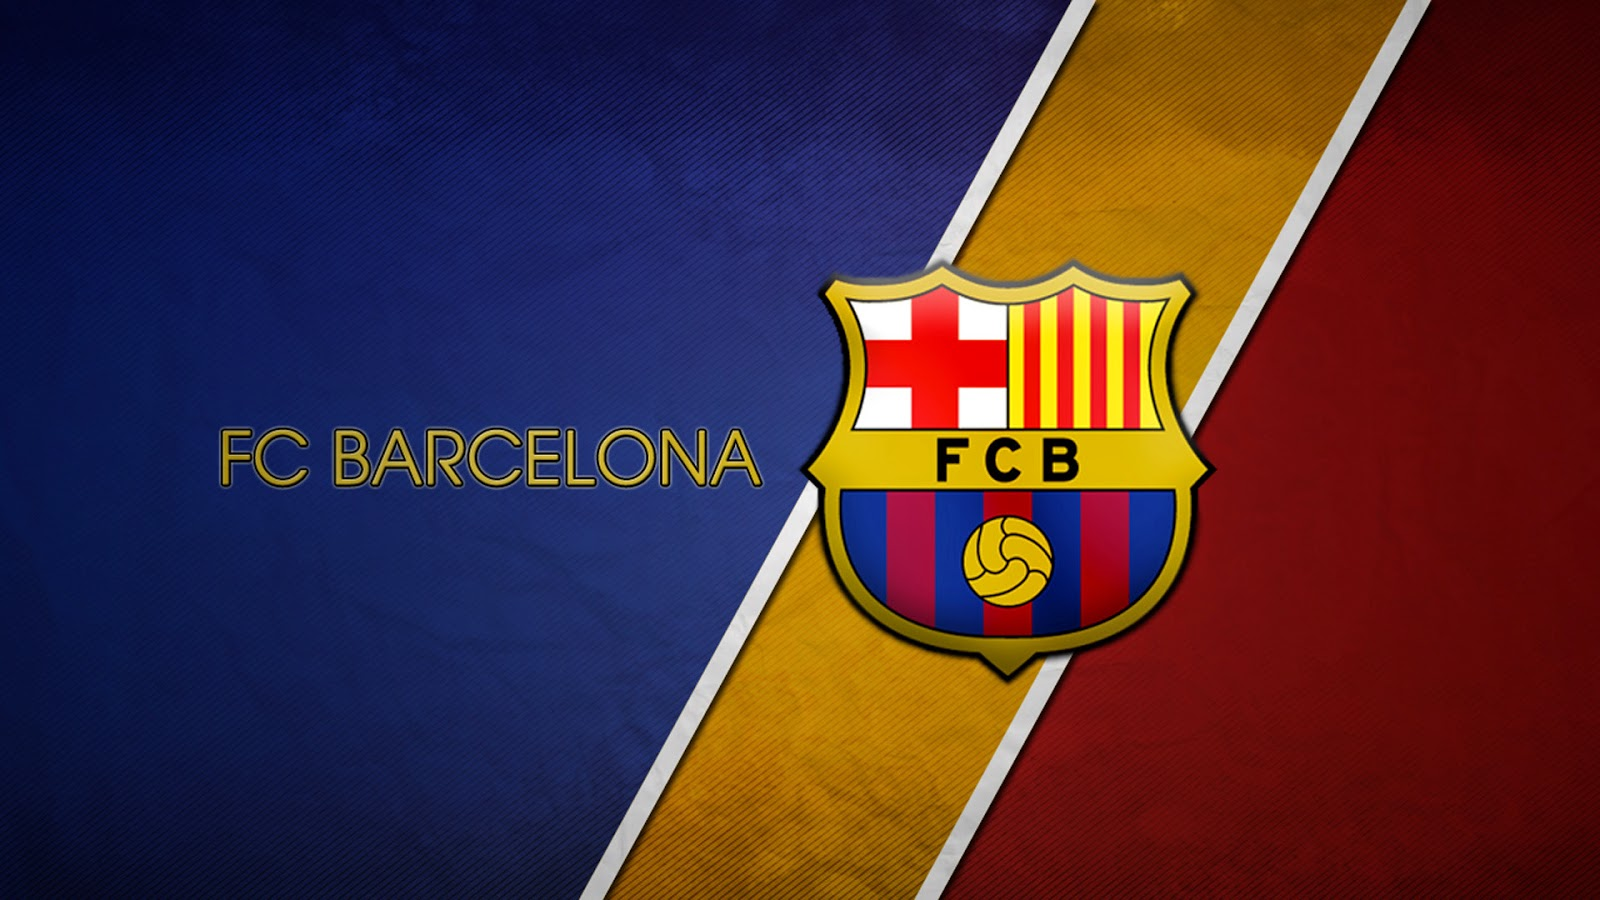 Barcelona Live Wallpapers - Android Apps on Google Play